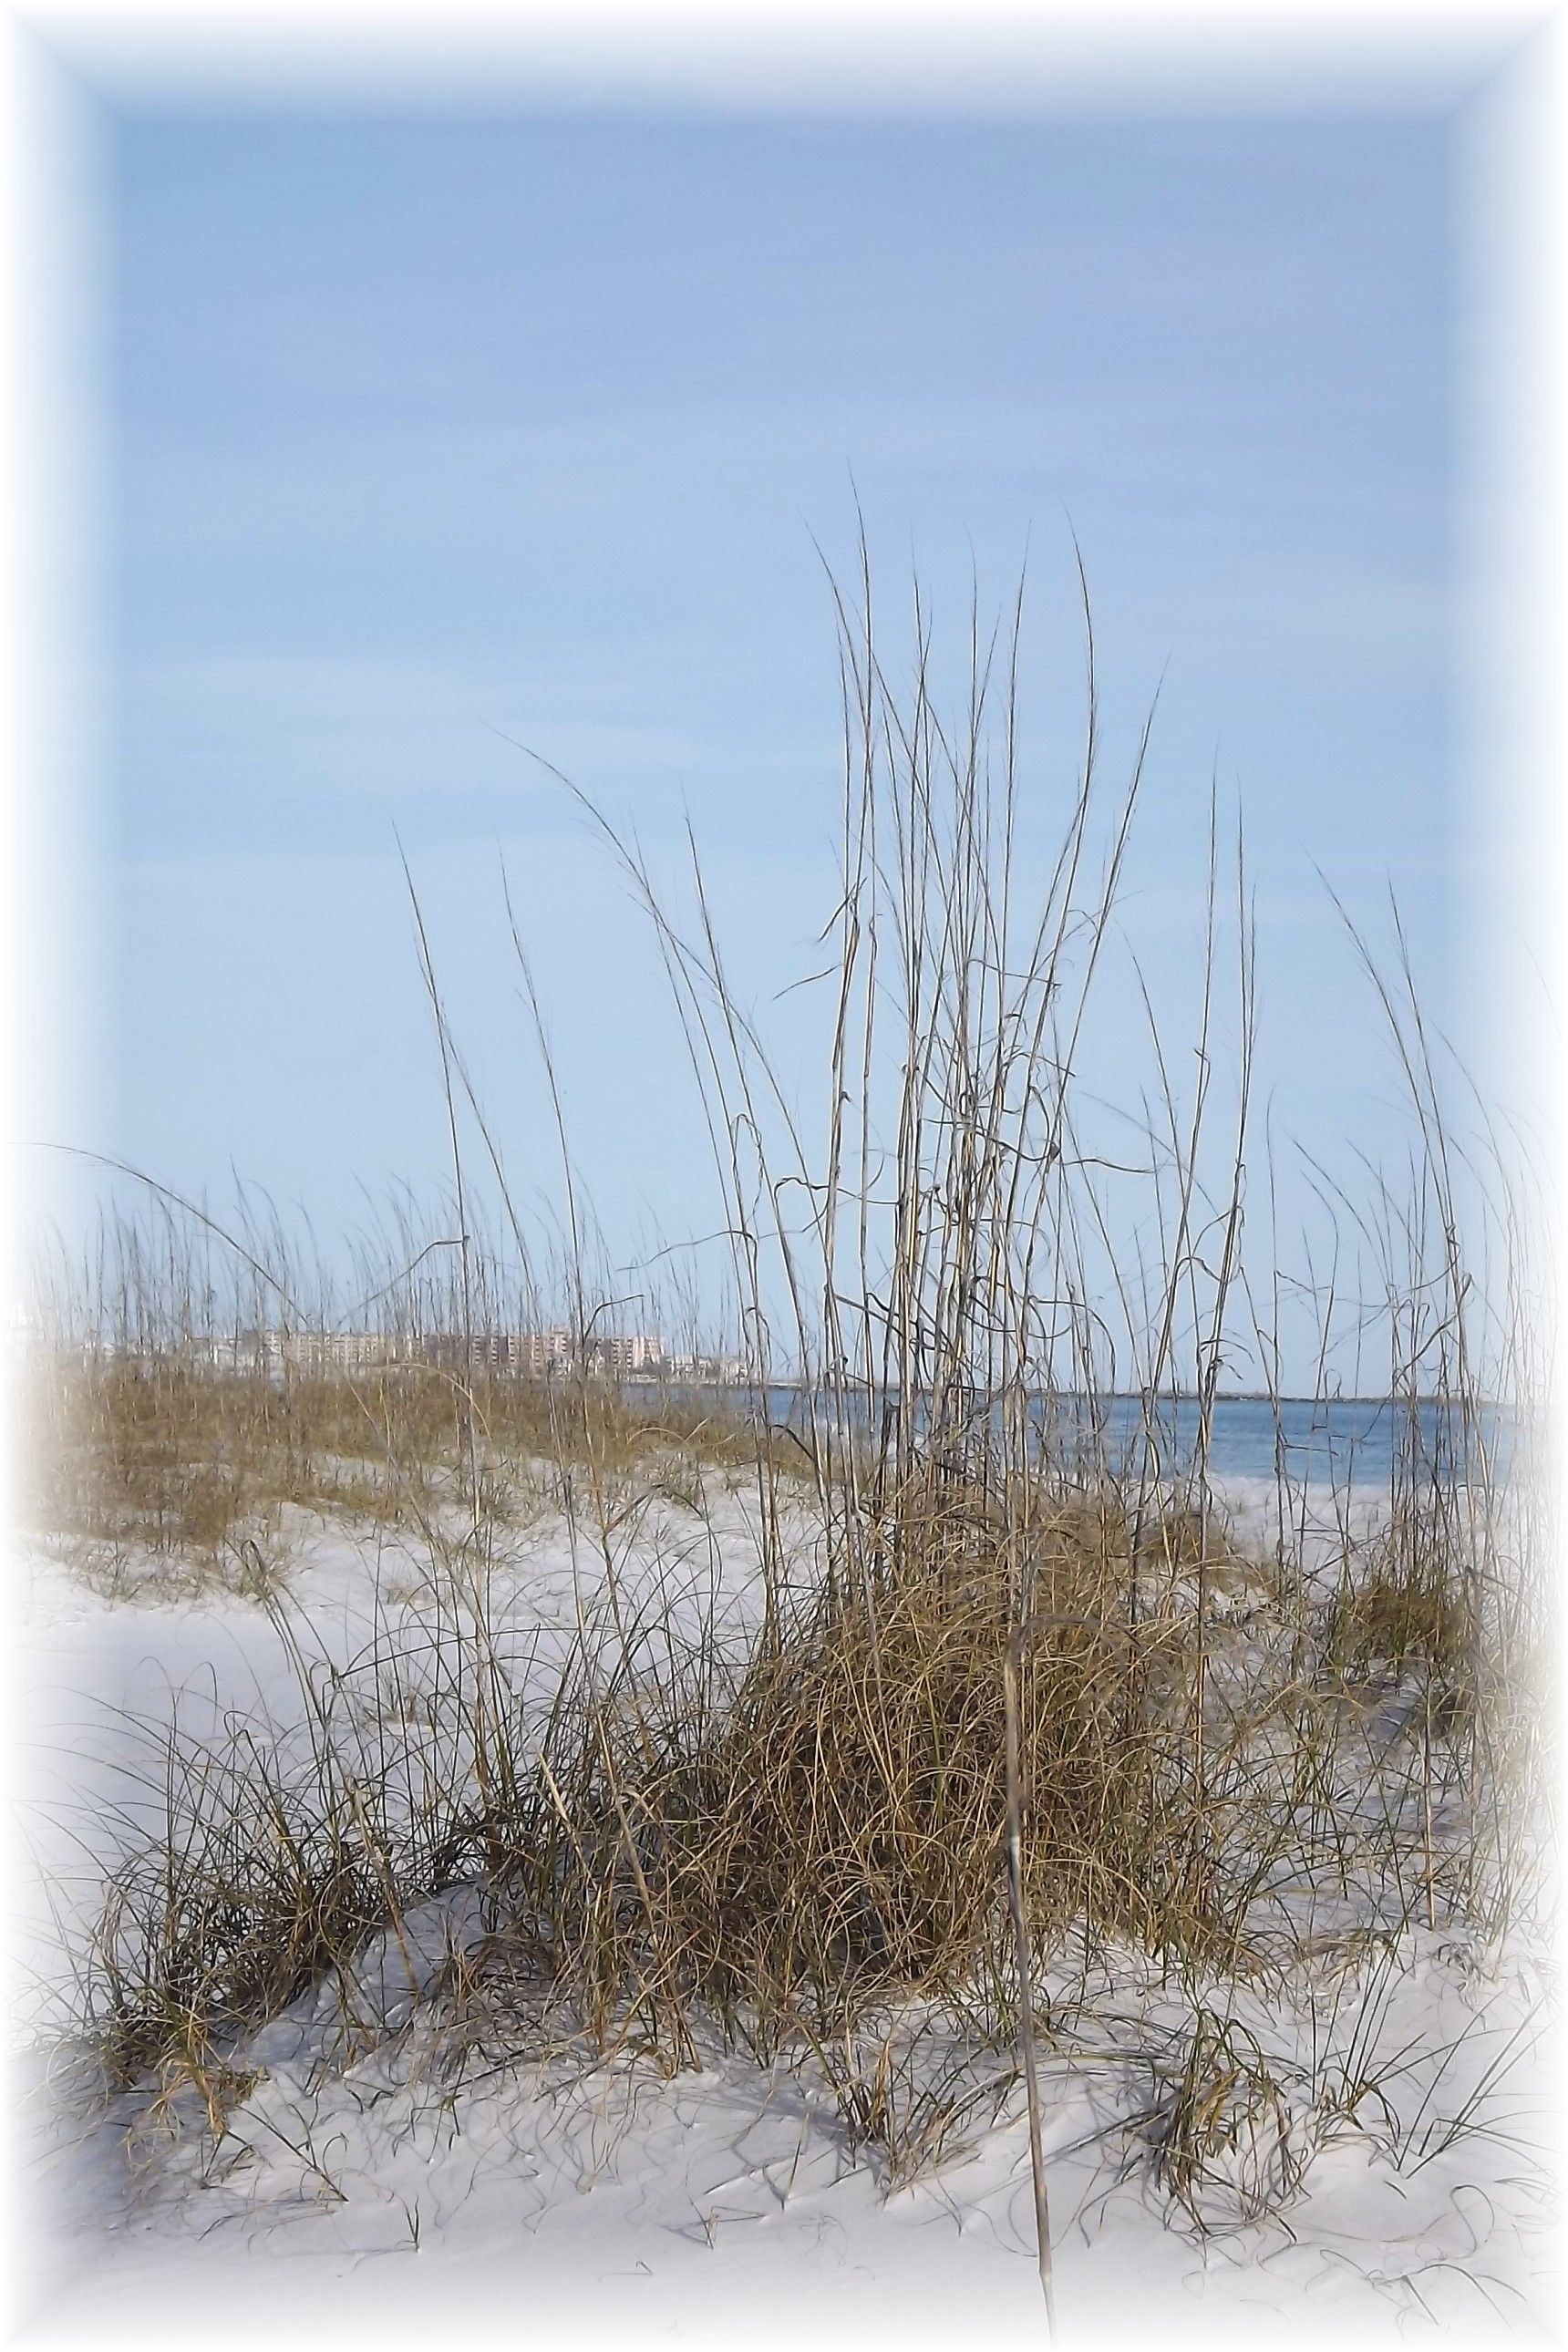 Seagrass Filled Sand Dunes And Destin Skyline In Florida Sea Art Sea Grass Skyline